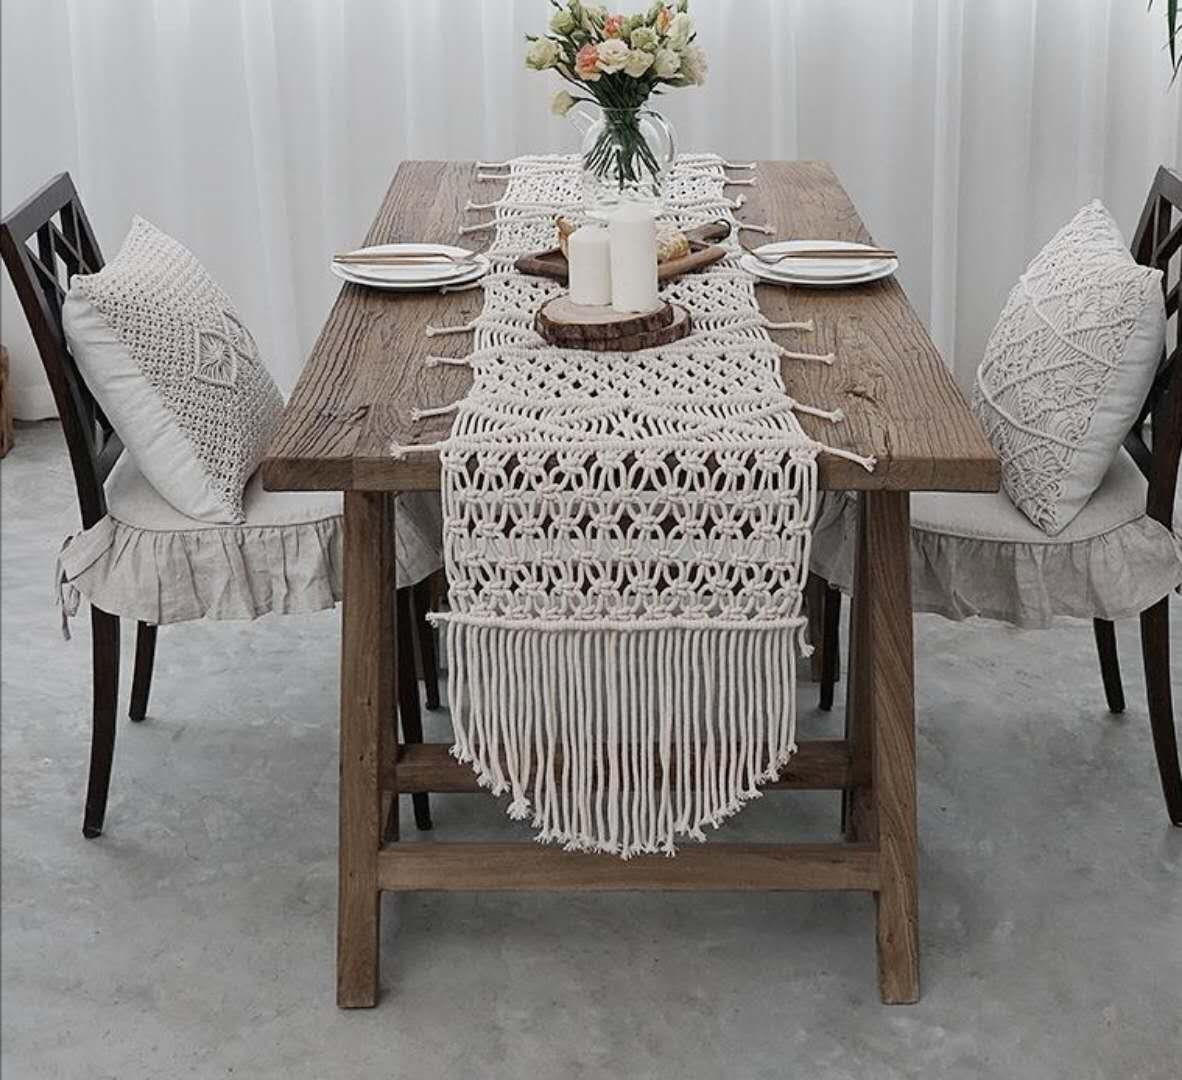 Custom Table runner